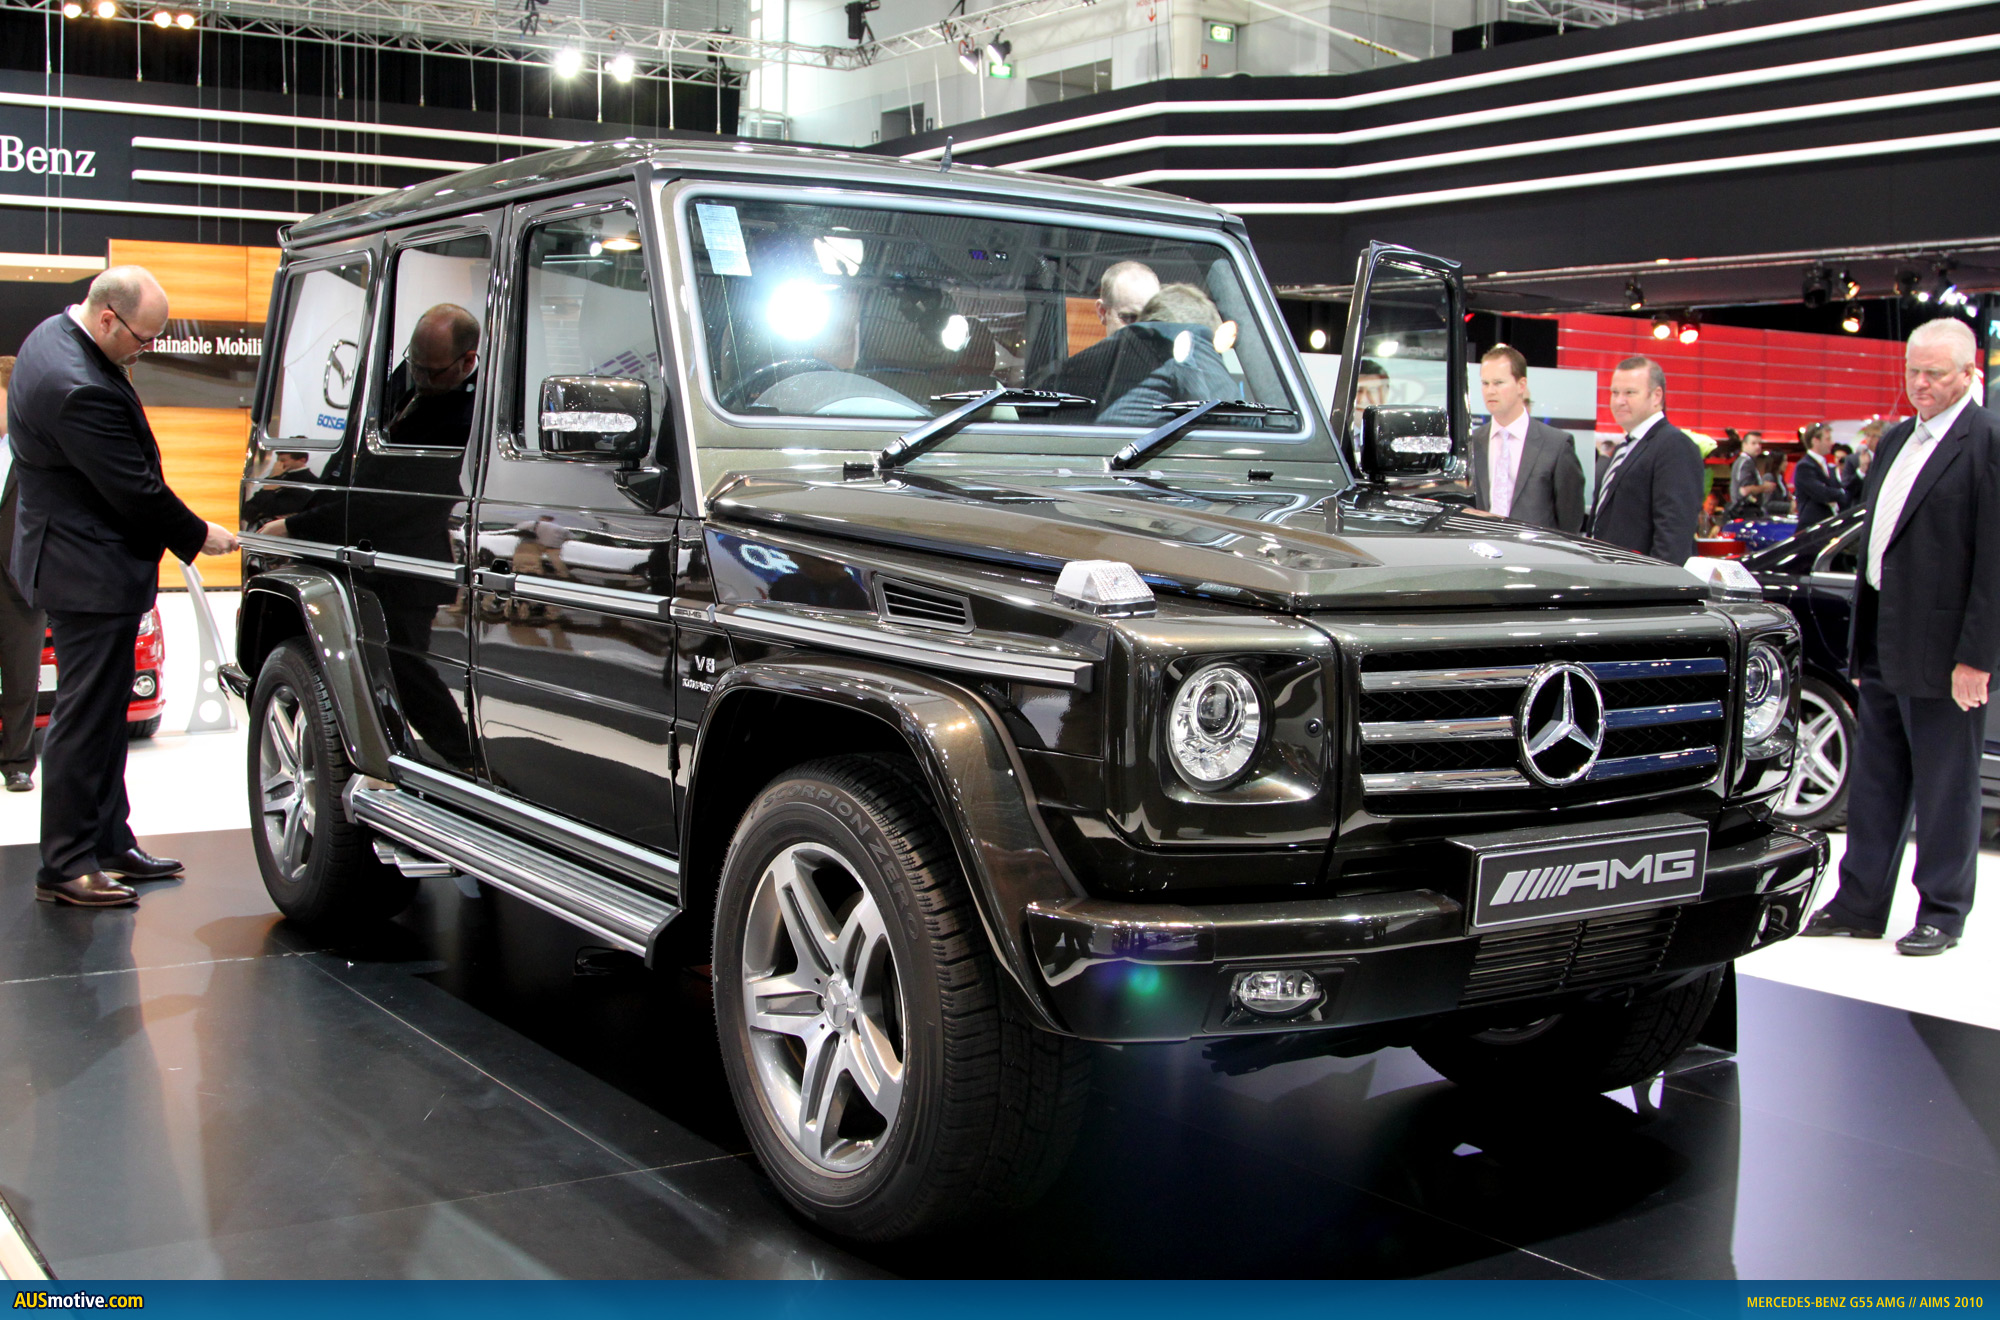 Aims 2010 mercedes benz g class for Mercedes benz g class 2010 for sale